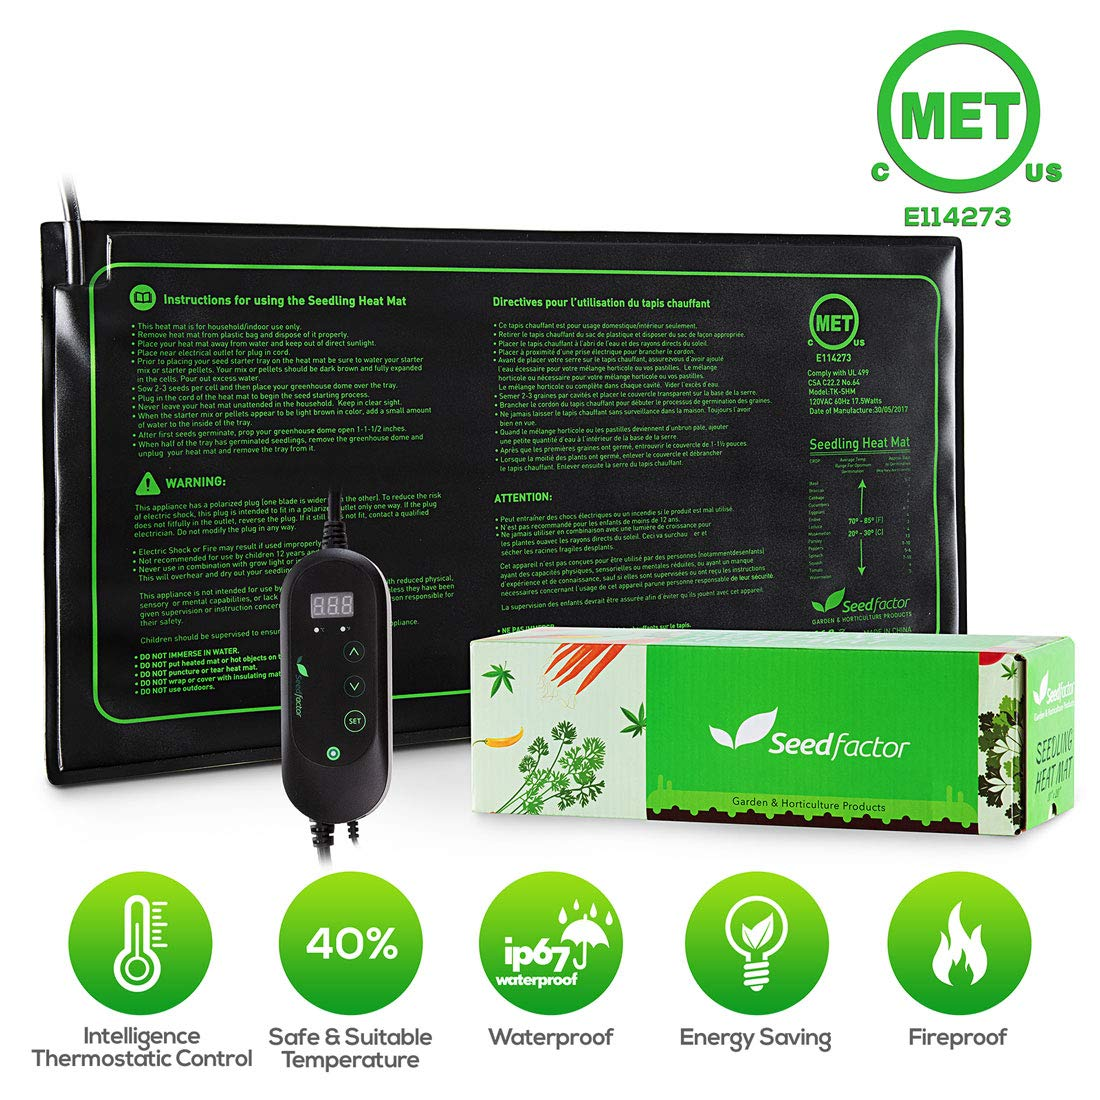 Seedfactor MET certified Seedling Heat Mat with 50℉~108℉ Digital Thermostat Controller for Seed Germination (10'' x 20'') by Seedfactor